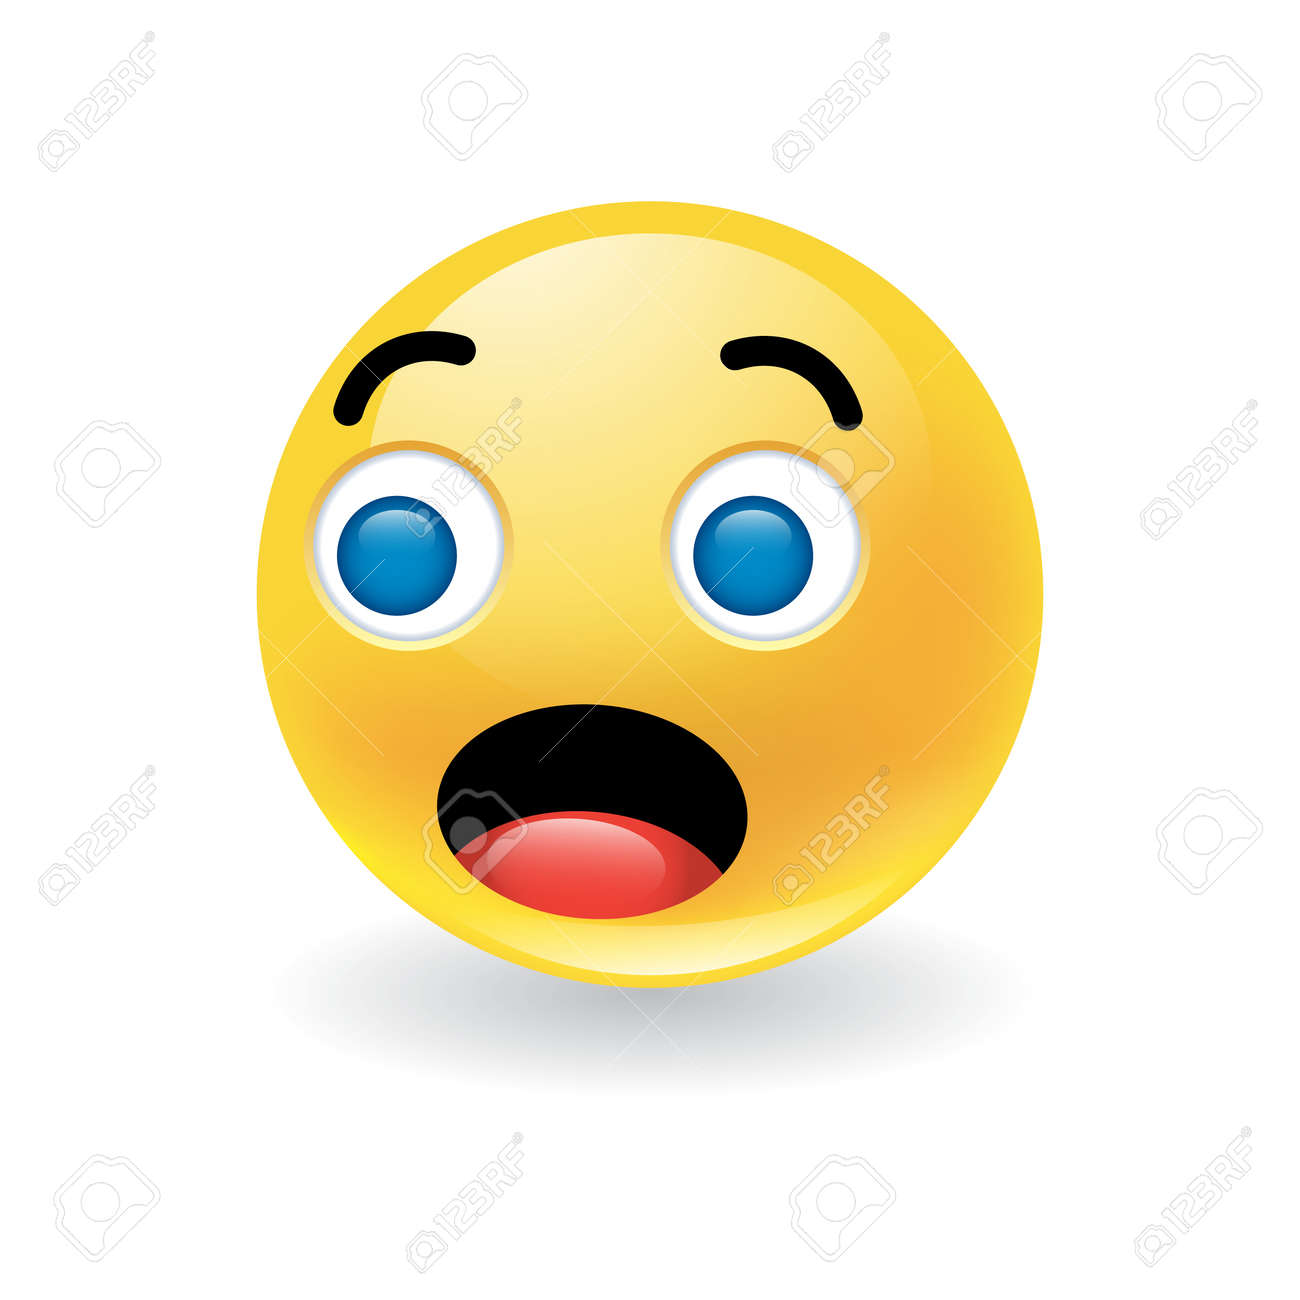 Colorful yellow round emoticon showing astonishment or amazement - 130748338